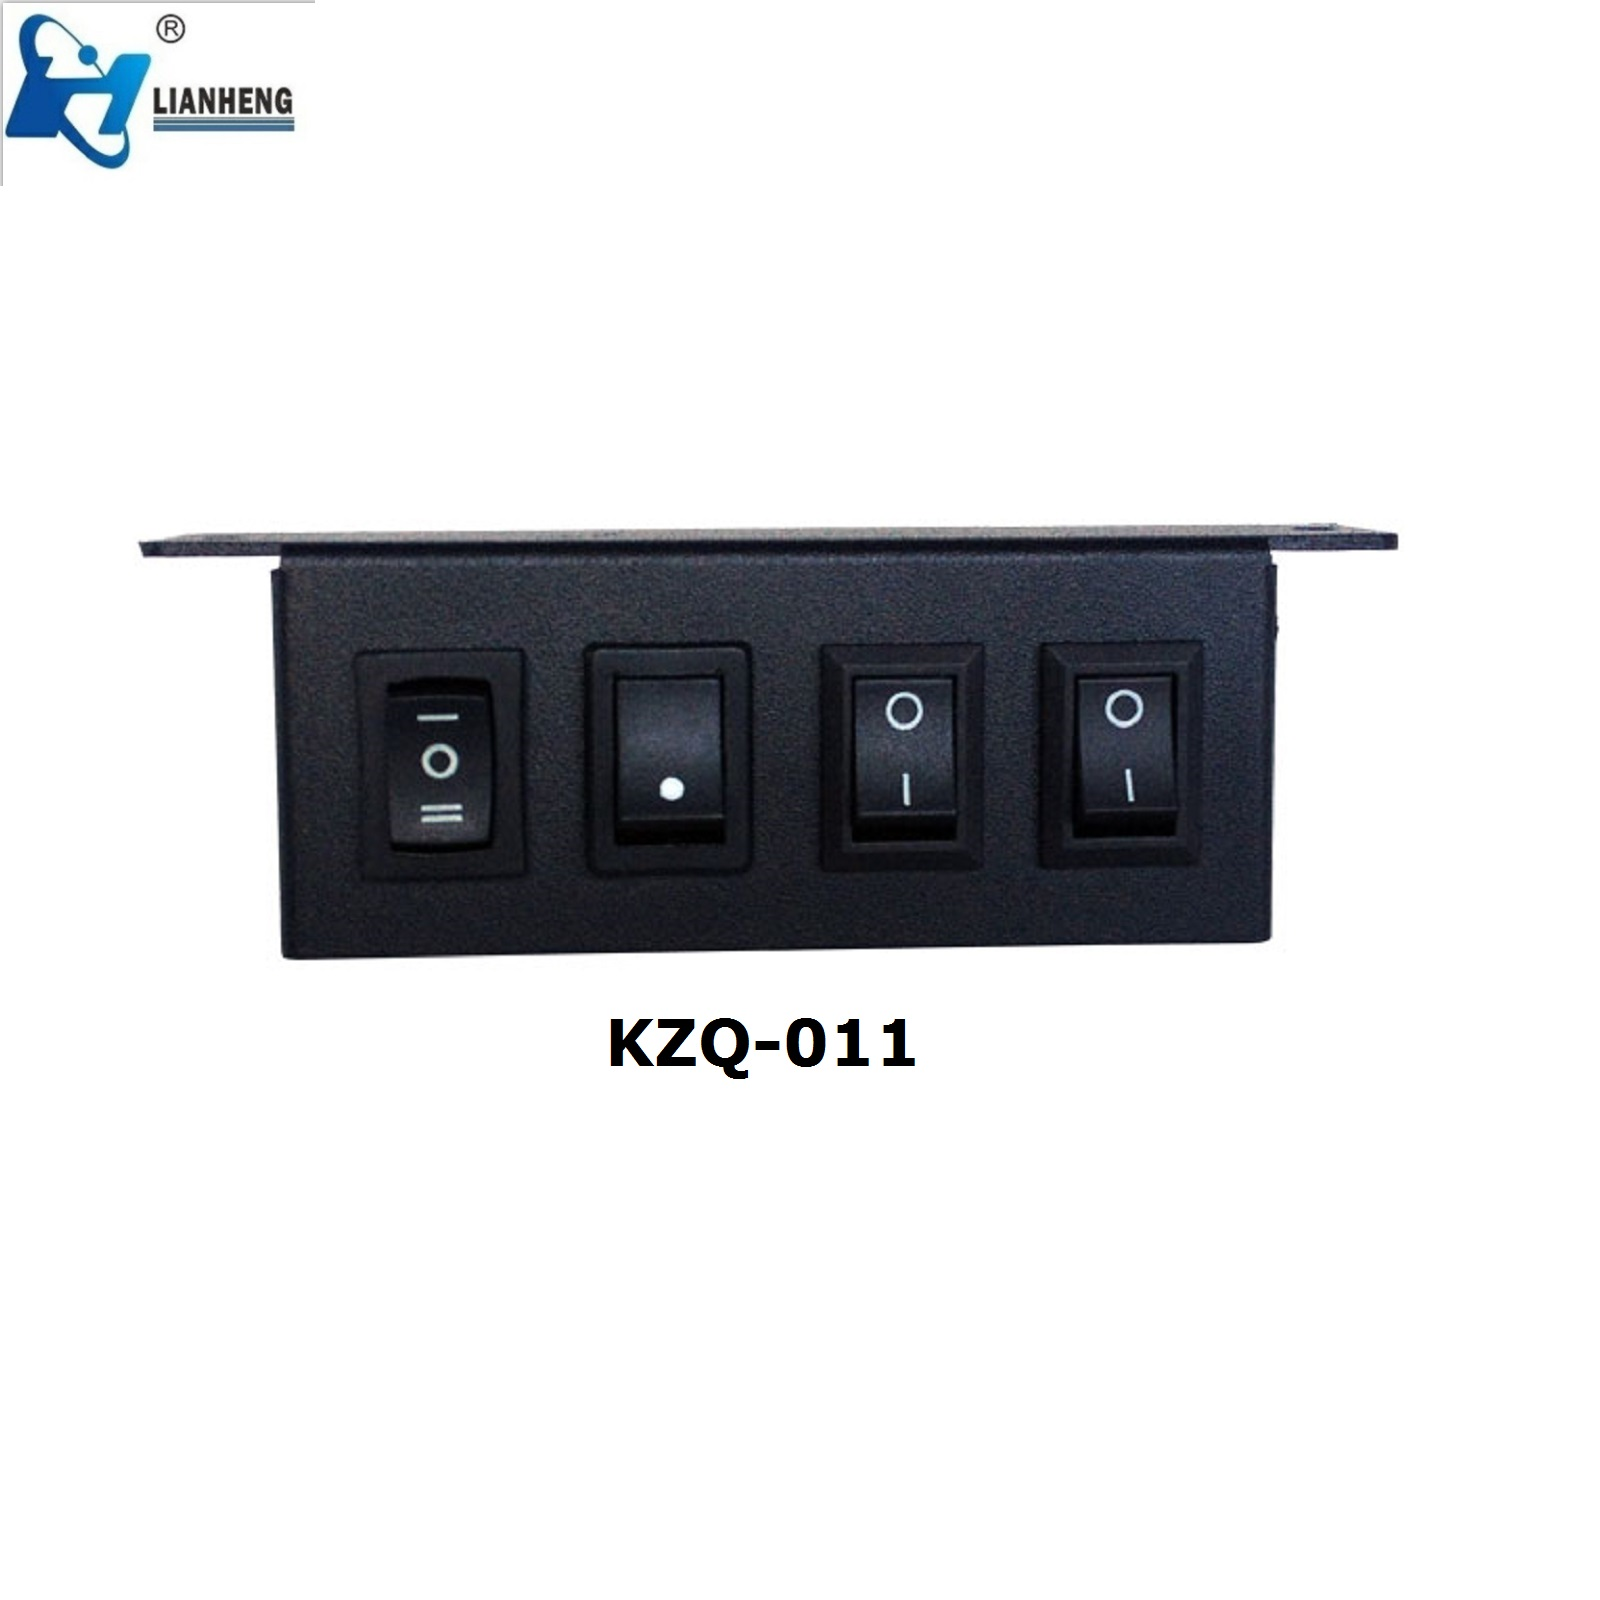 Police Control Switch , LED Light and Siren Control Box